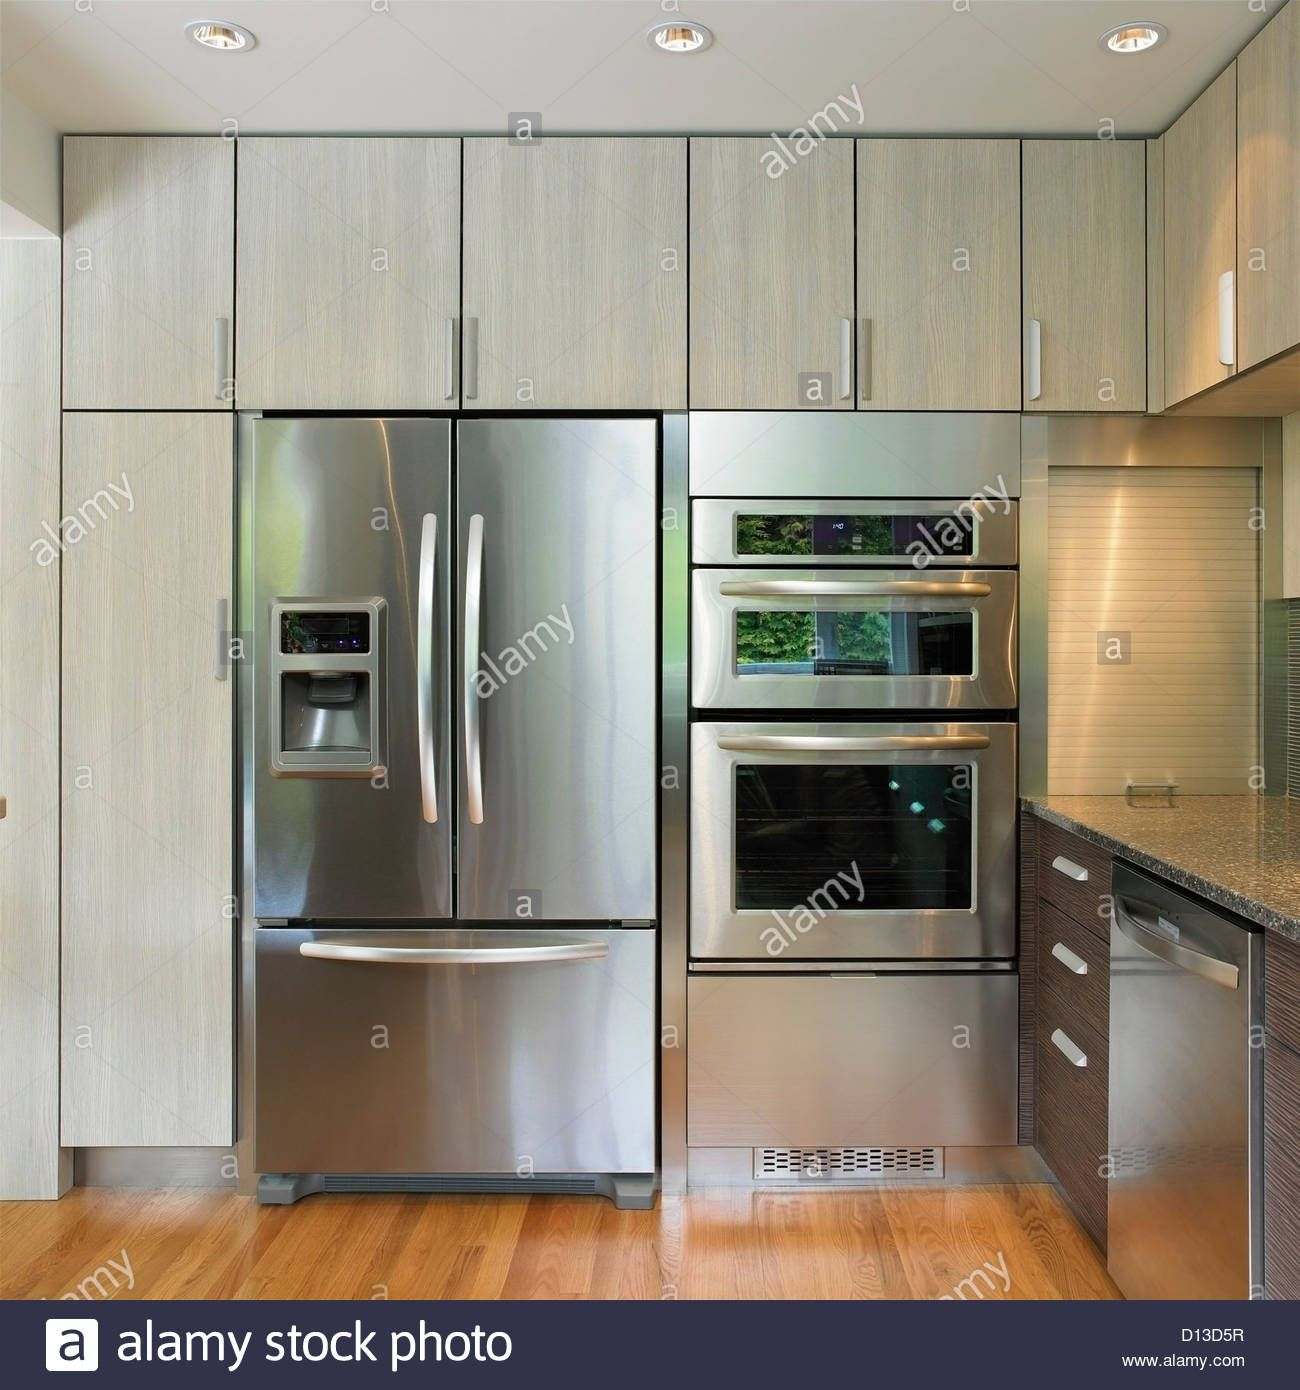 Image Result For Kitchen Built In Voens Like This Combo Of Double